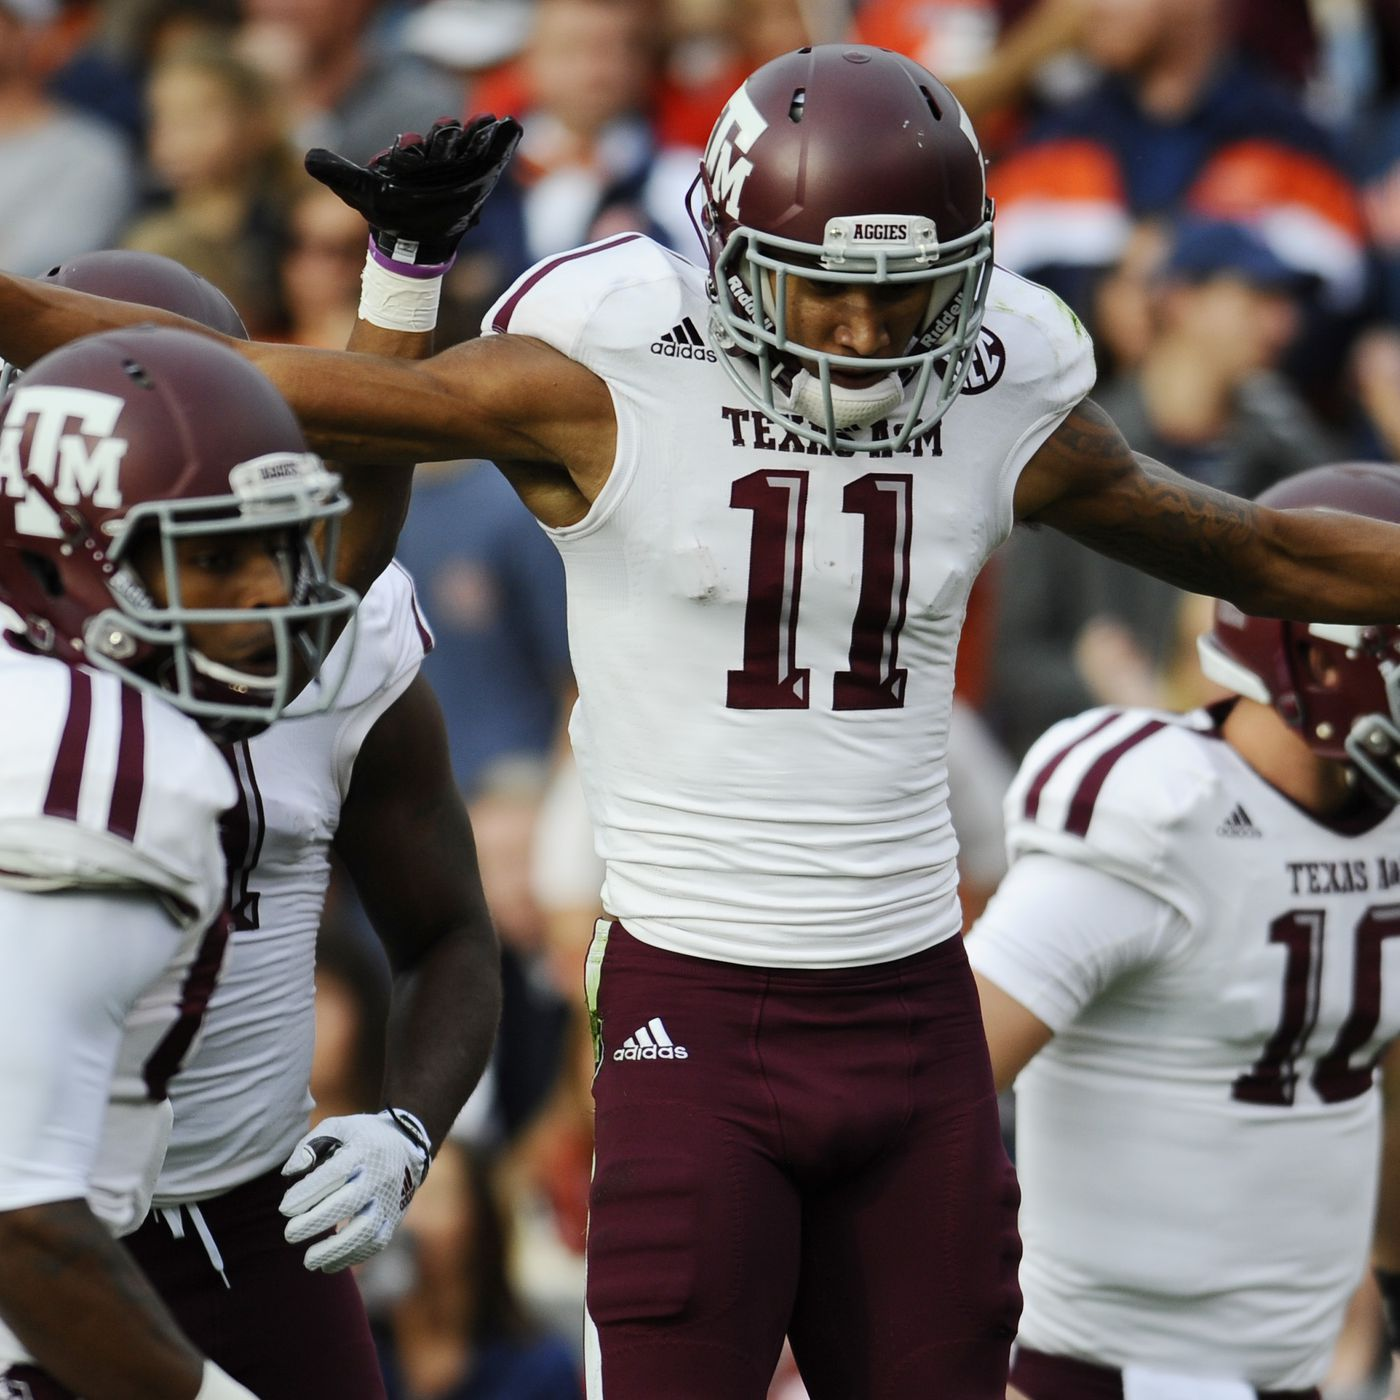 Asu vs texas a&m betting coolmore classic betting trends